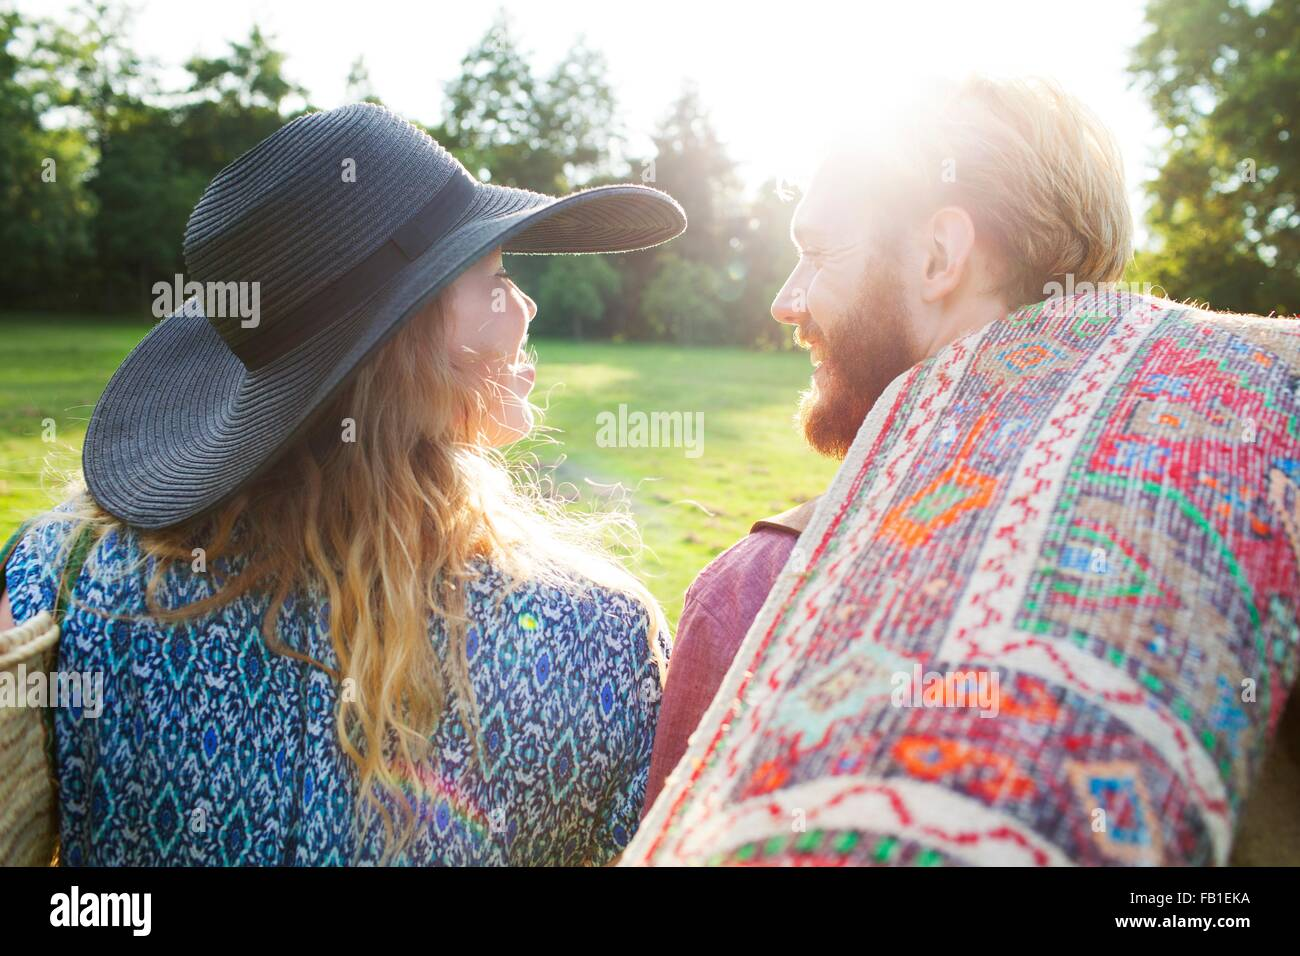 Rear view of romantic young couple carrying rug for picnic in park - Stock Image